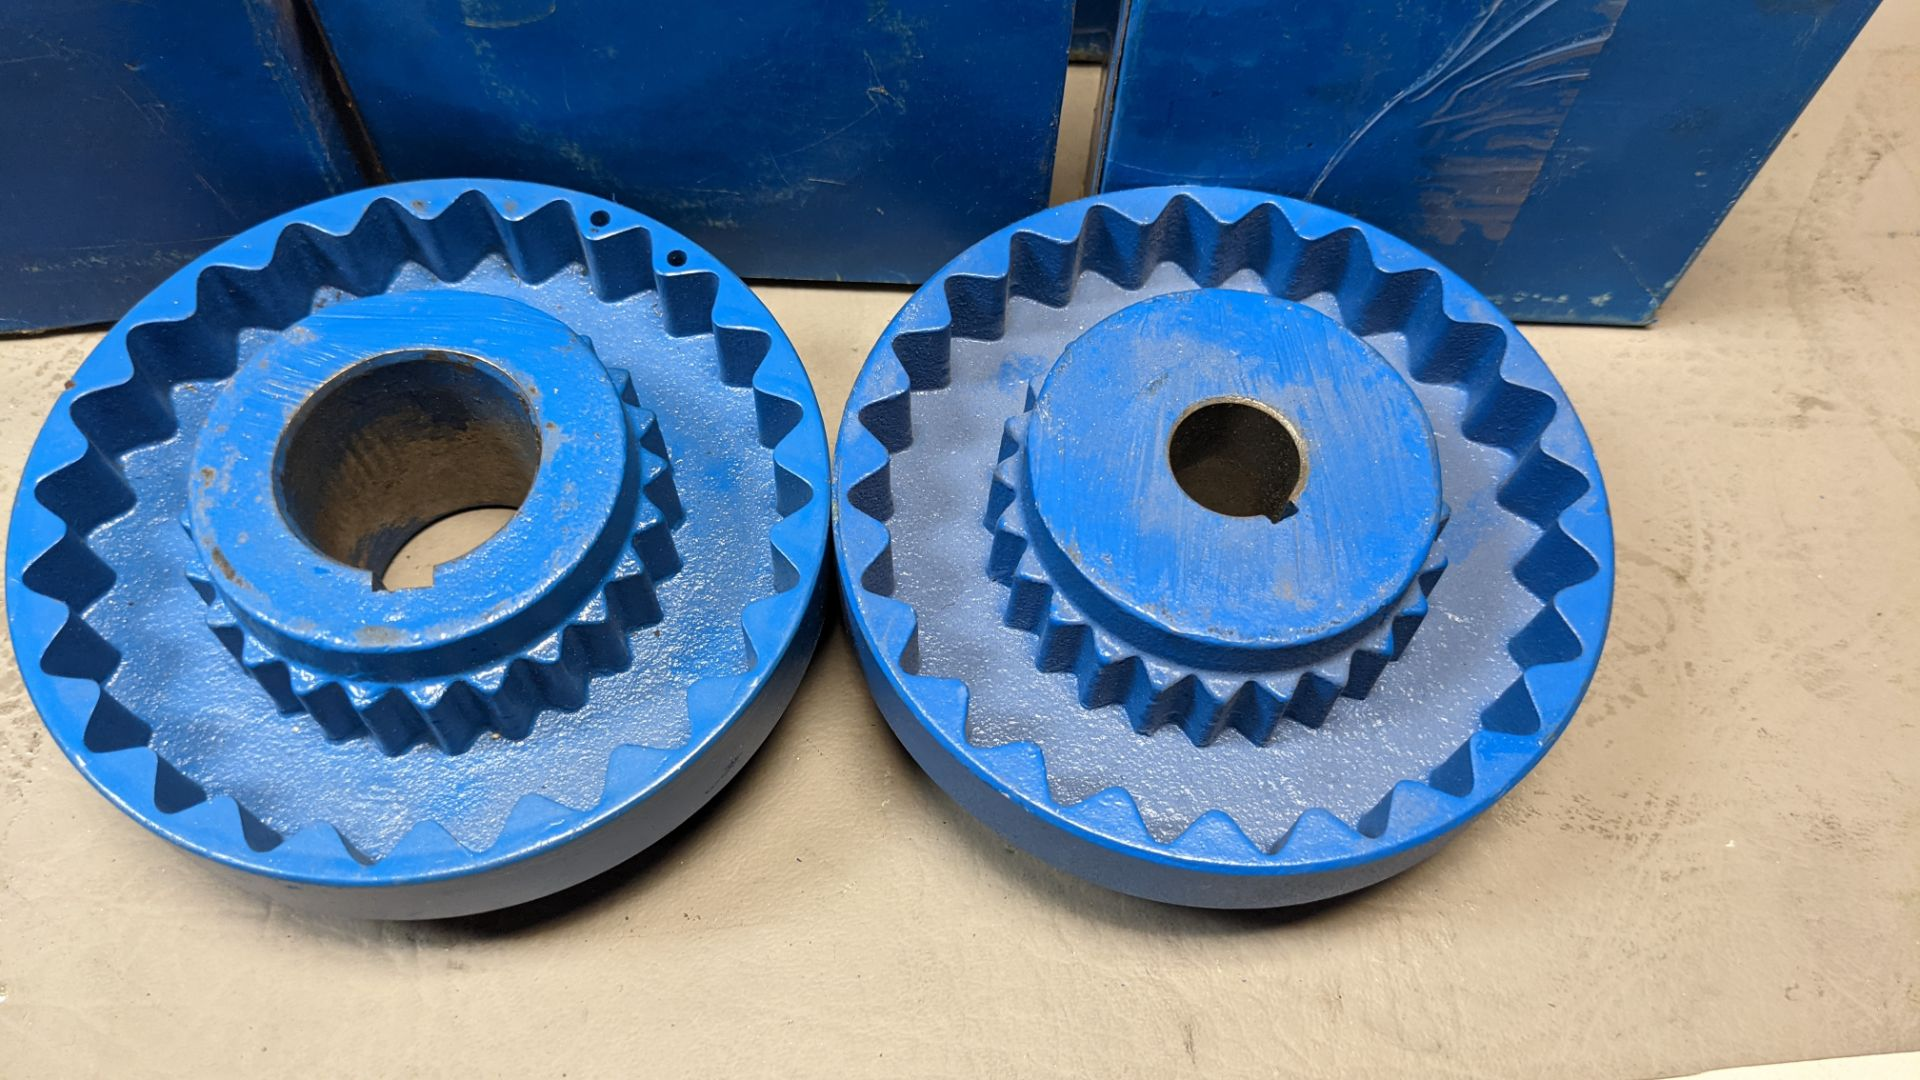 LOT OF NEW MARTIN SPROCKETS, SPUR GEARS, COUPLINGS ETC - Image 2 of 5